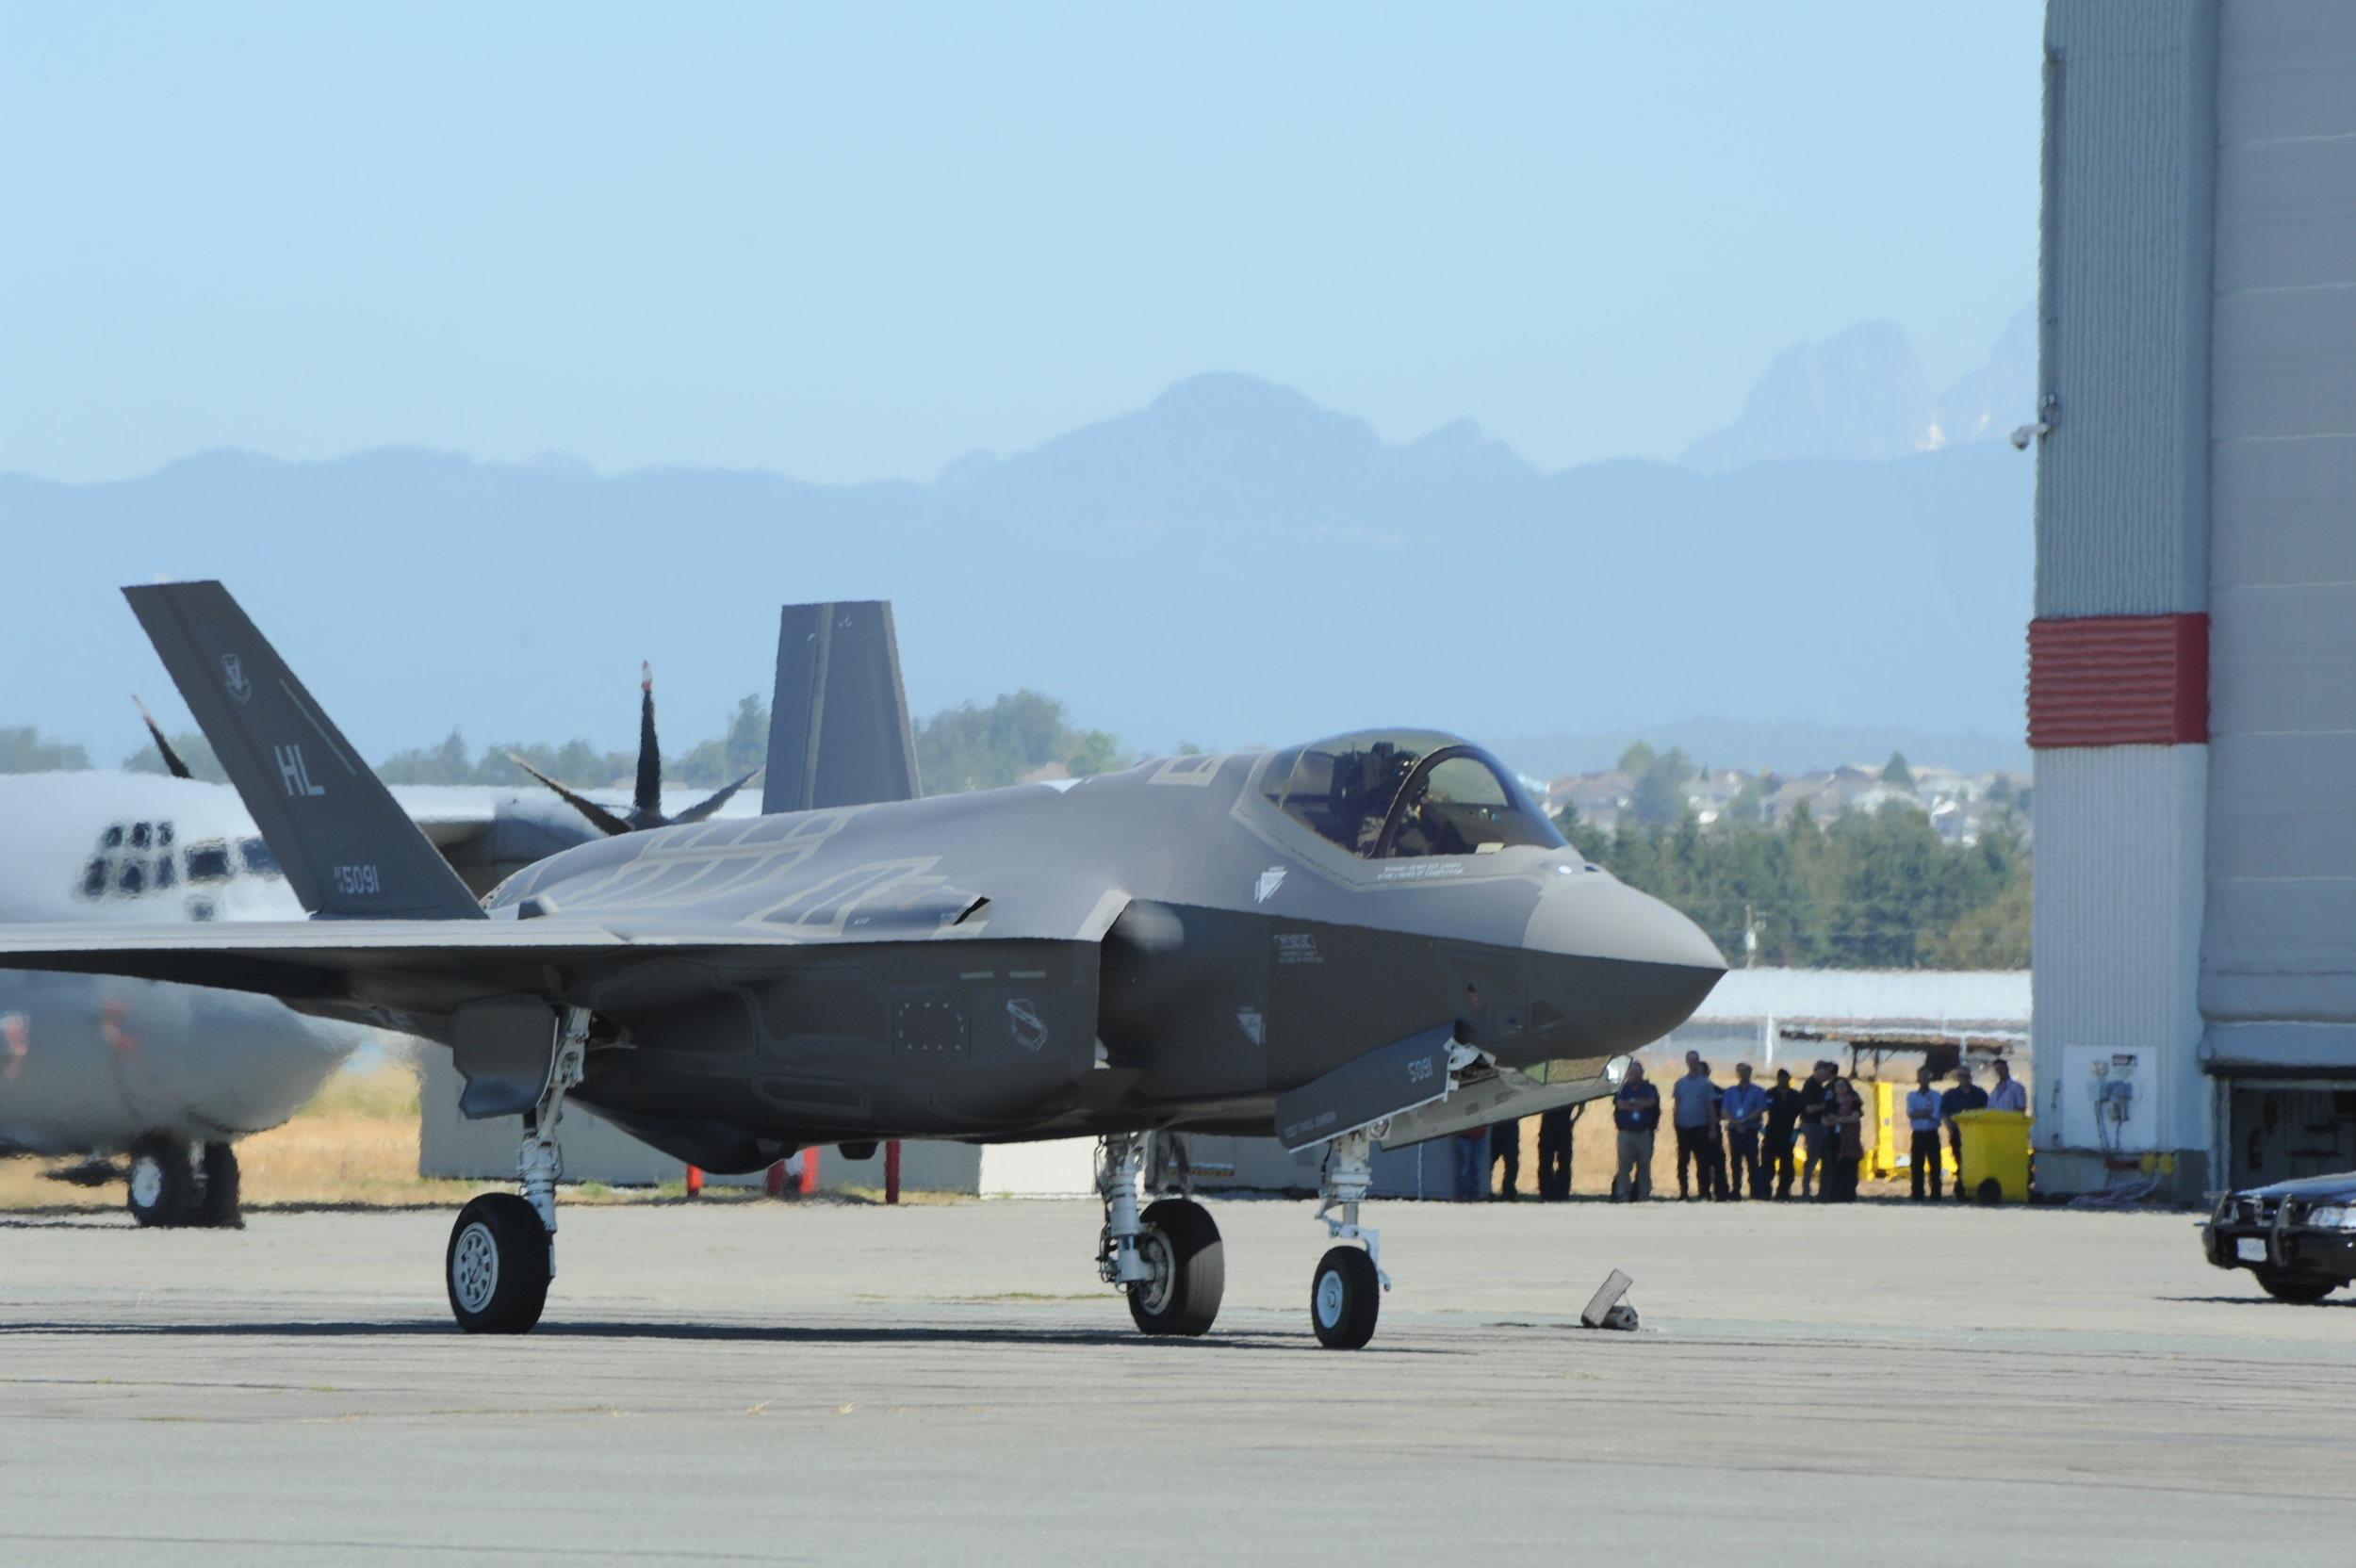 An F-35A starts to taxi to the runway as it begins its homeward journey to Hill Air Force Base in Utah. On August 2 the USAF declared their F-35A Lightning II fighter fleet combat ready.